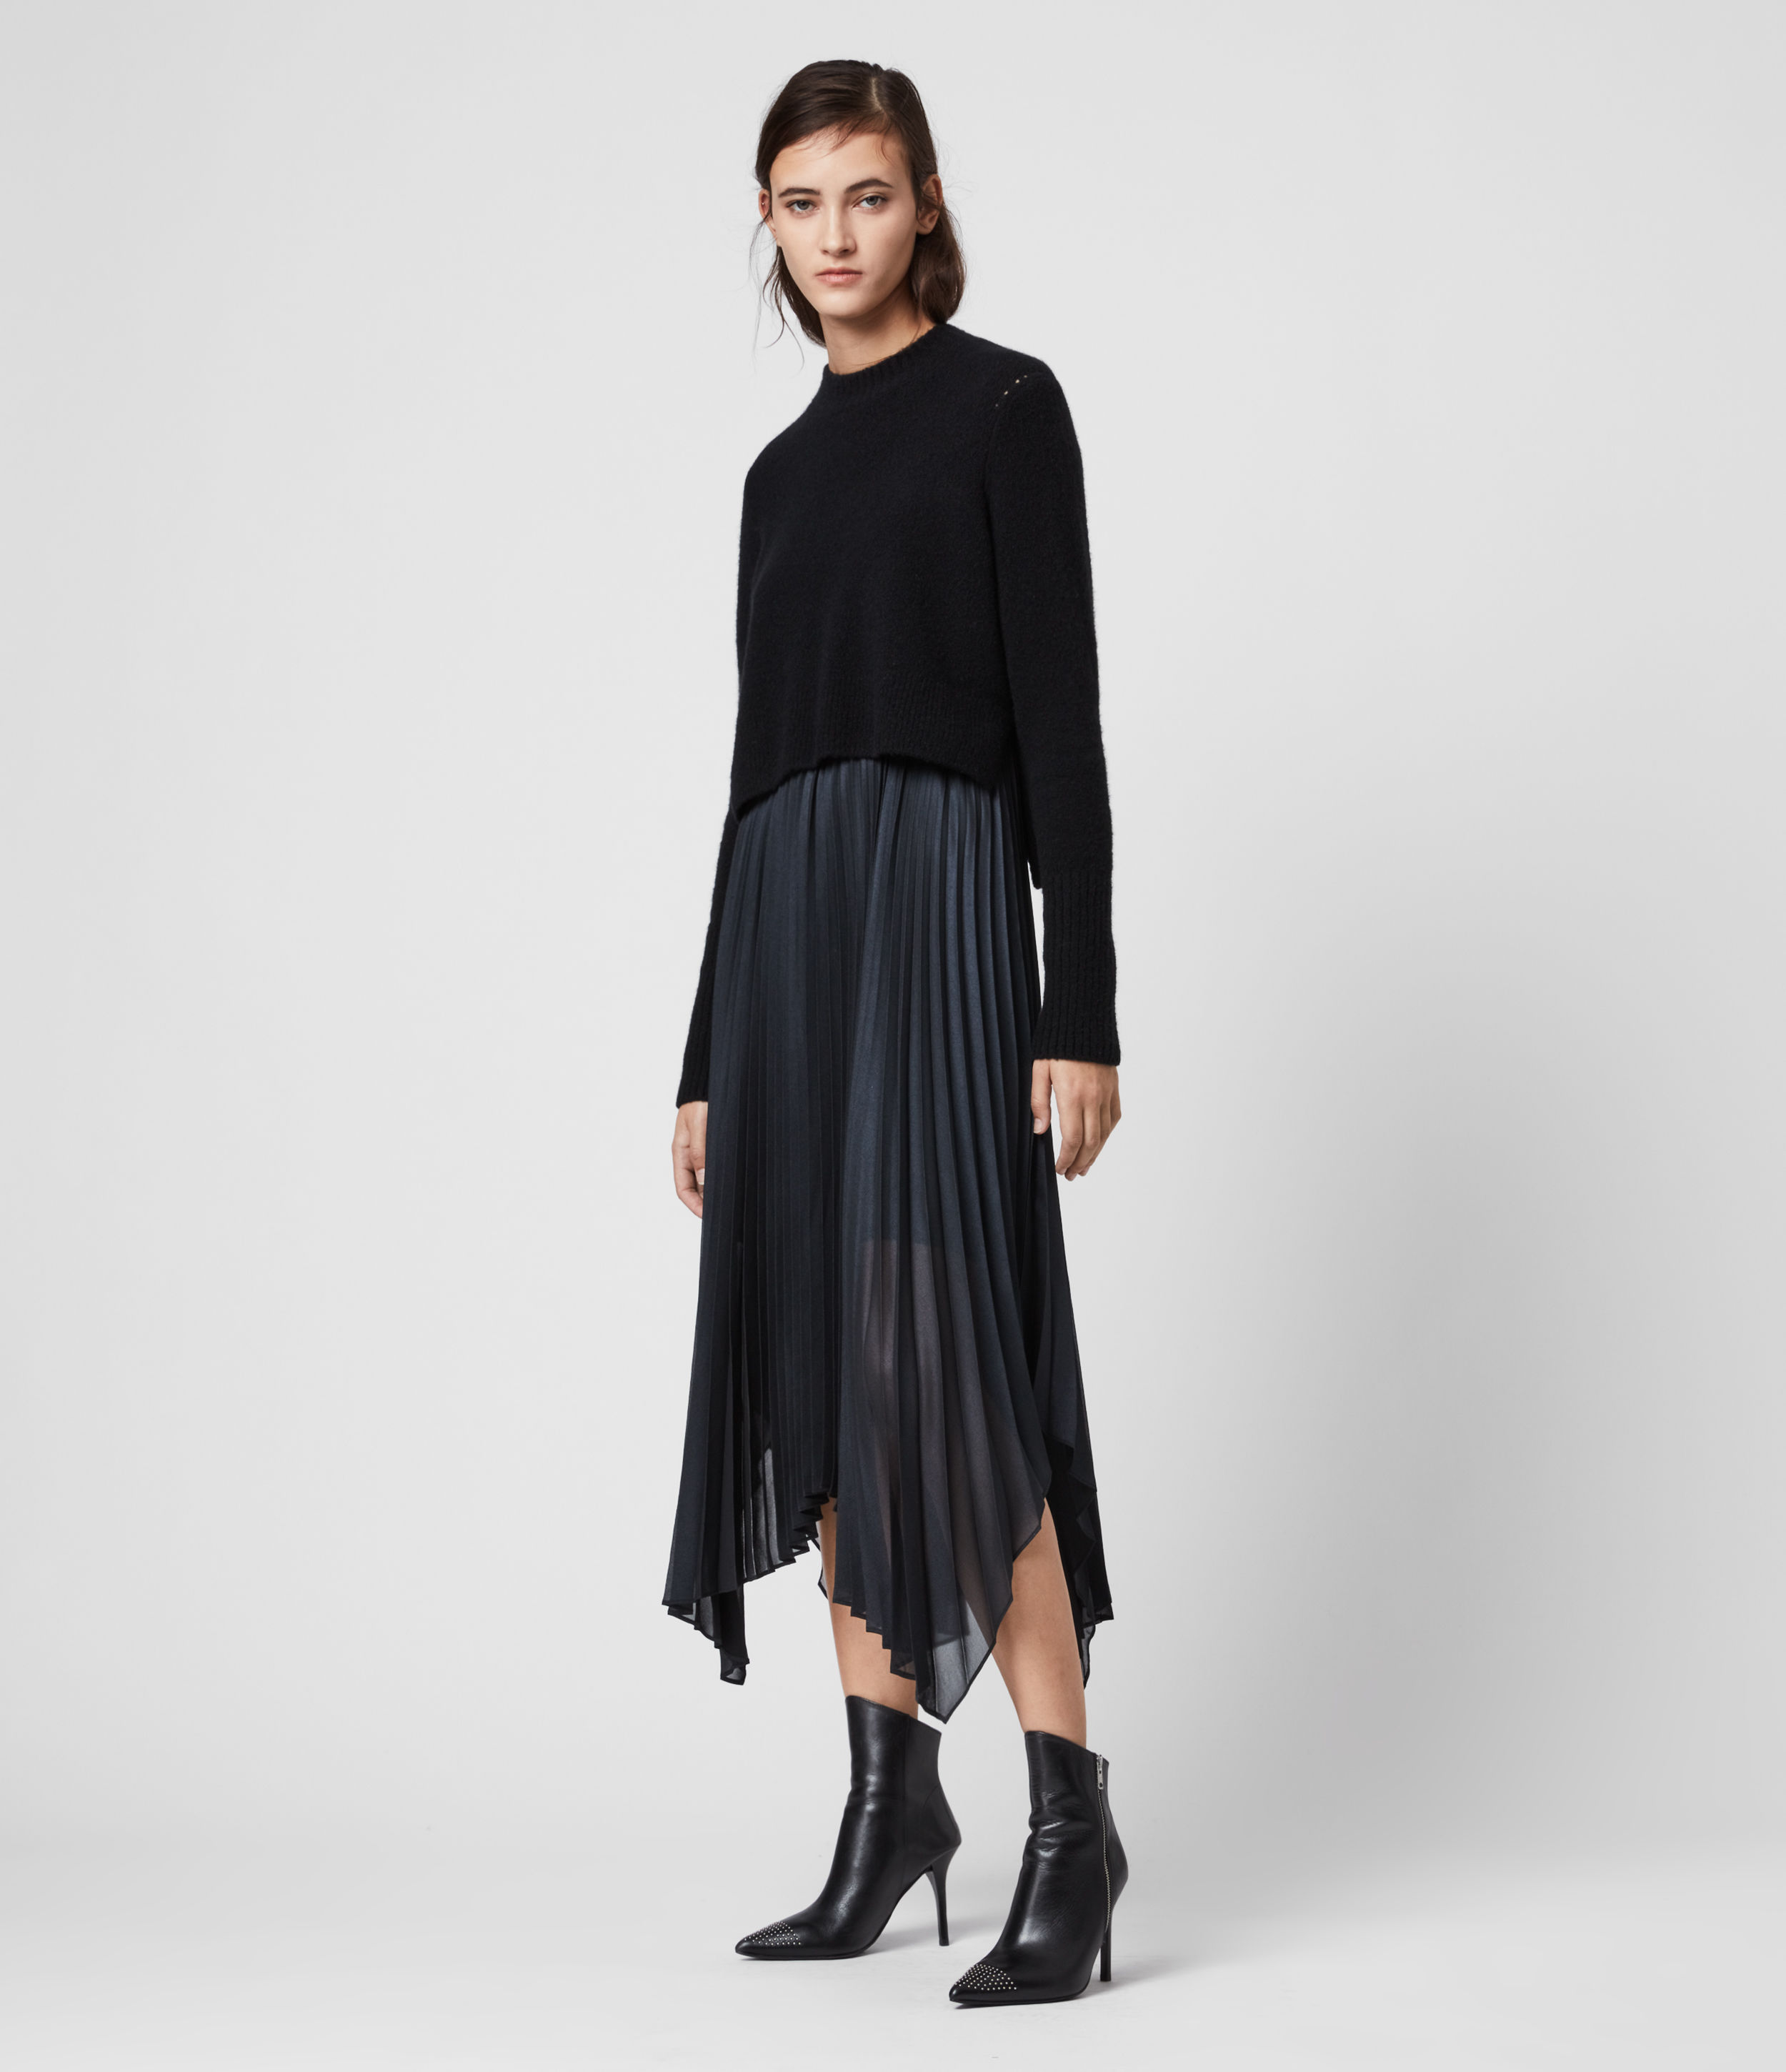 AllSaints Lerin Knit 2-in-1 Dress